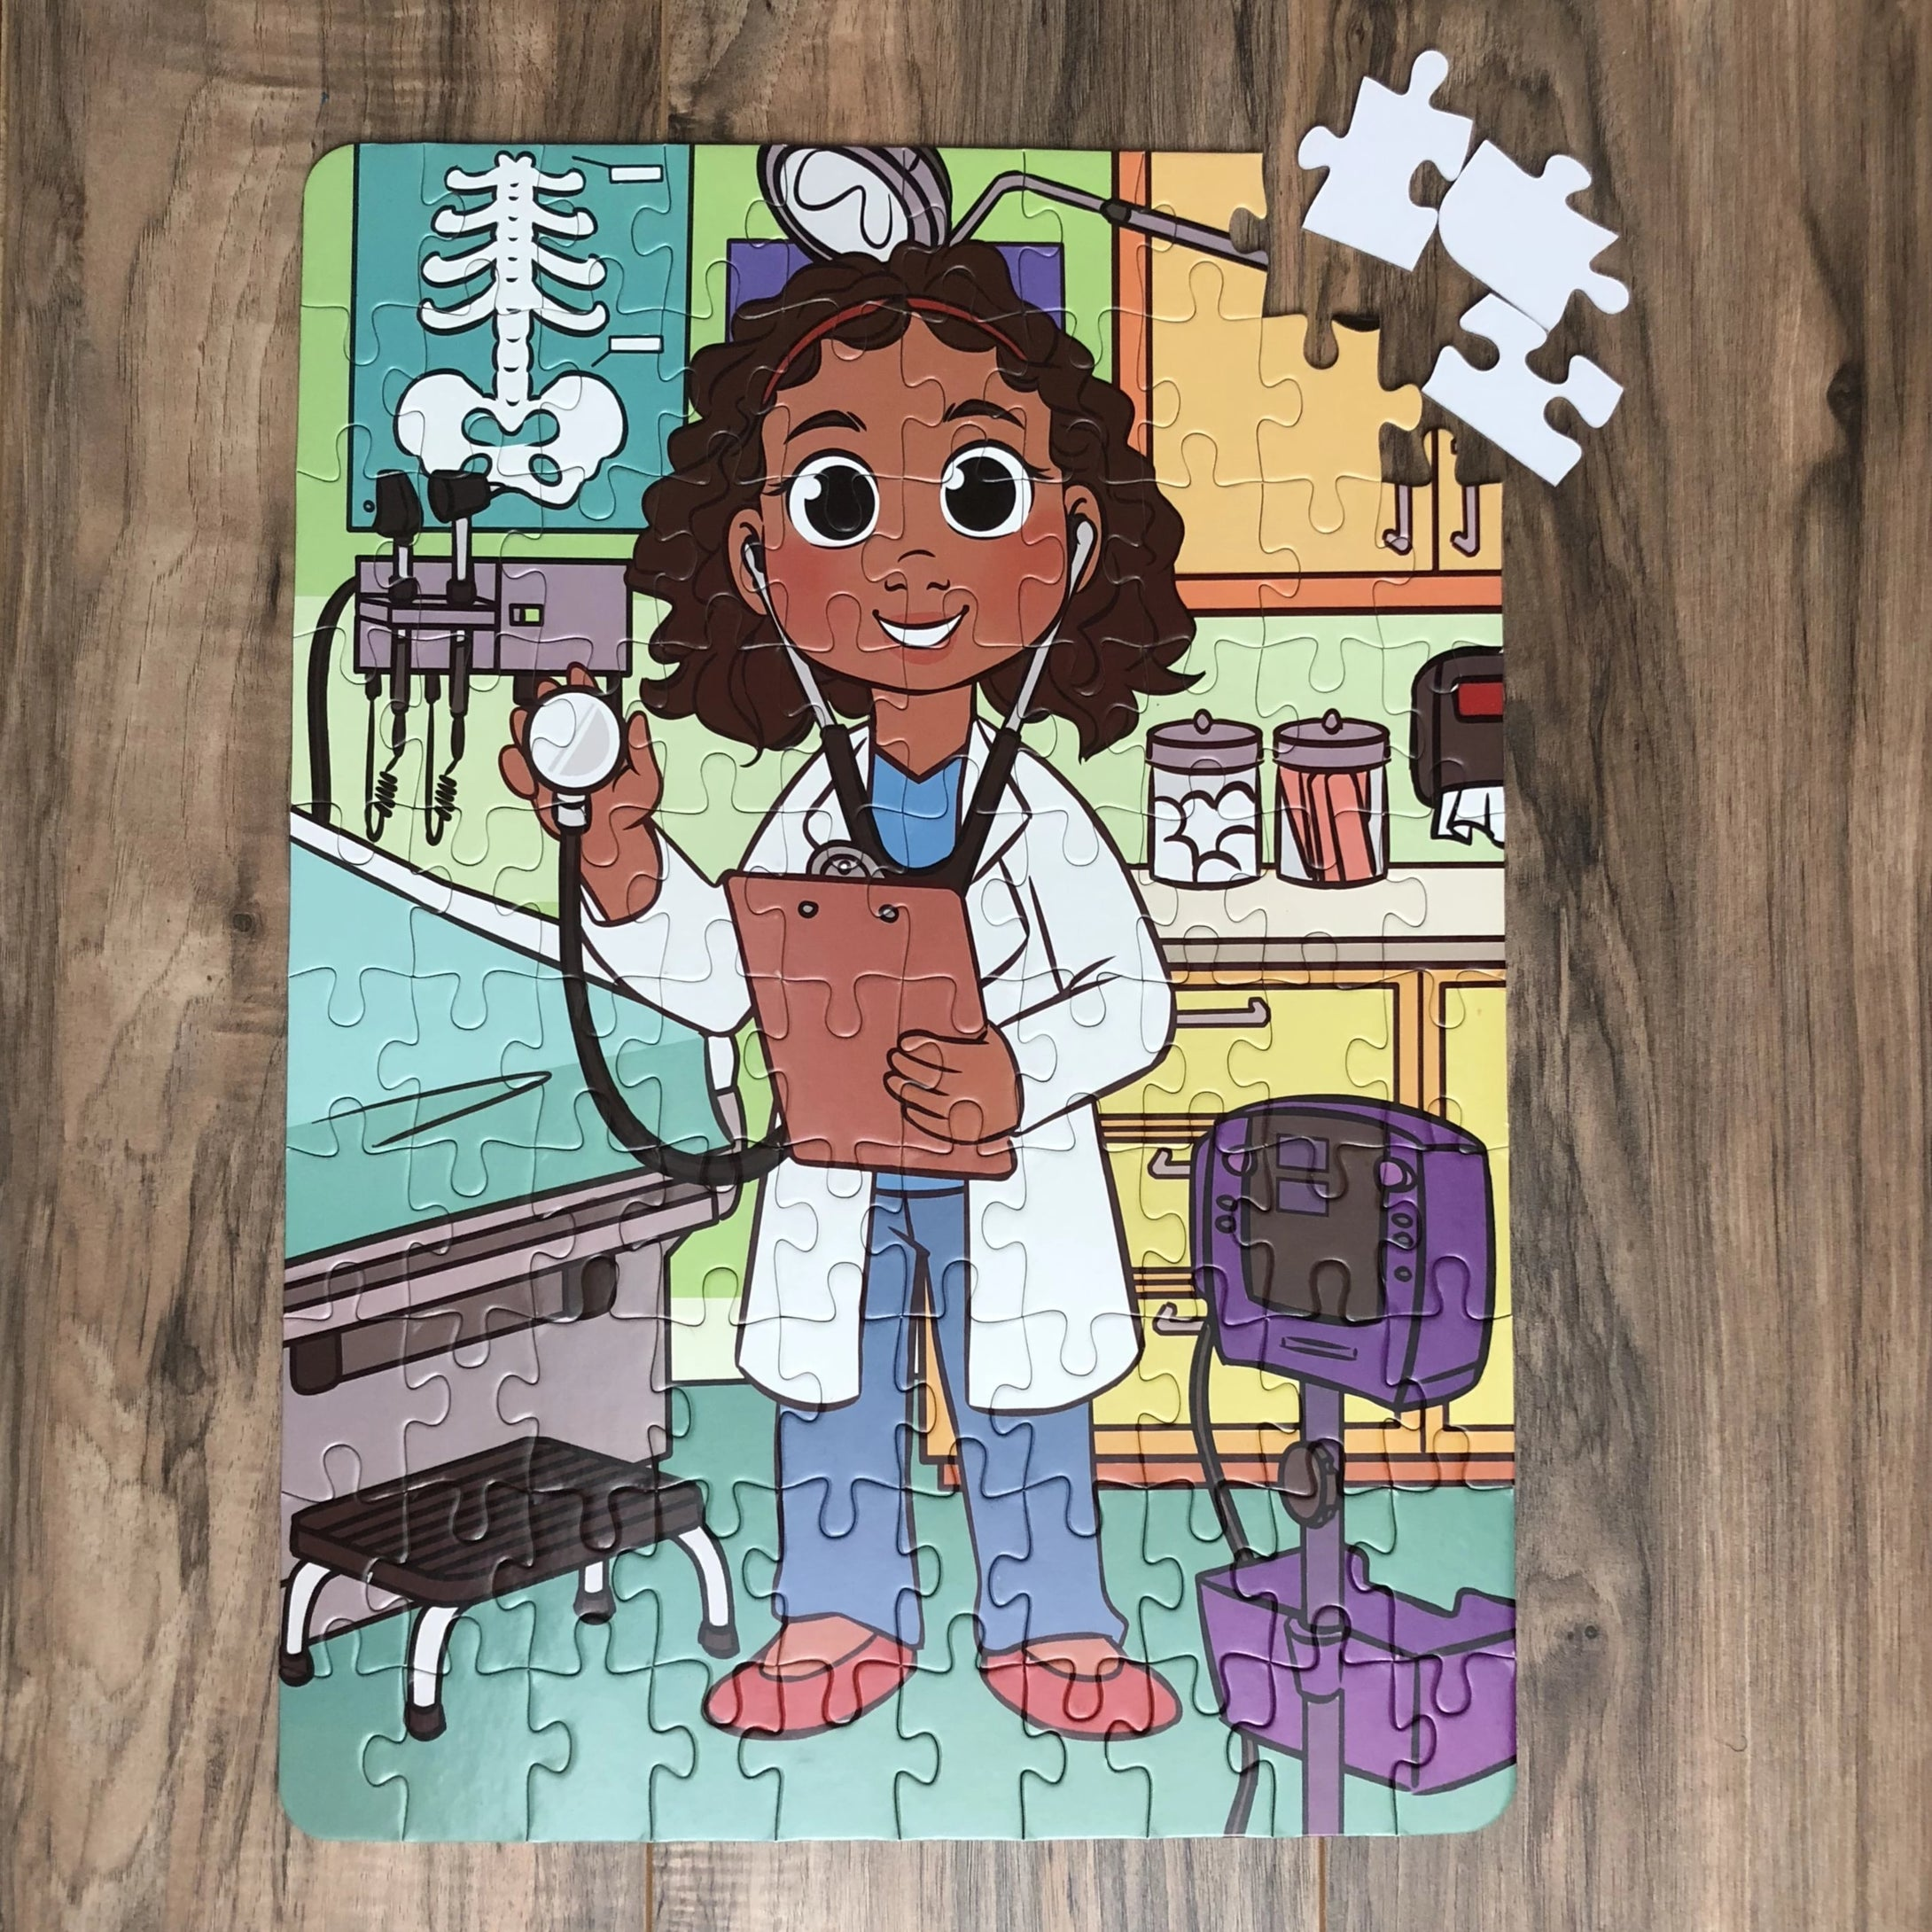 XL Future Doctor Kids' Puzzle (14in x 19.5in w/100 Pieces)